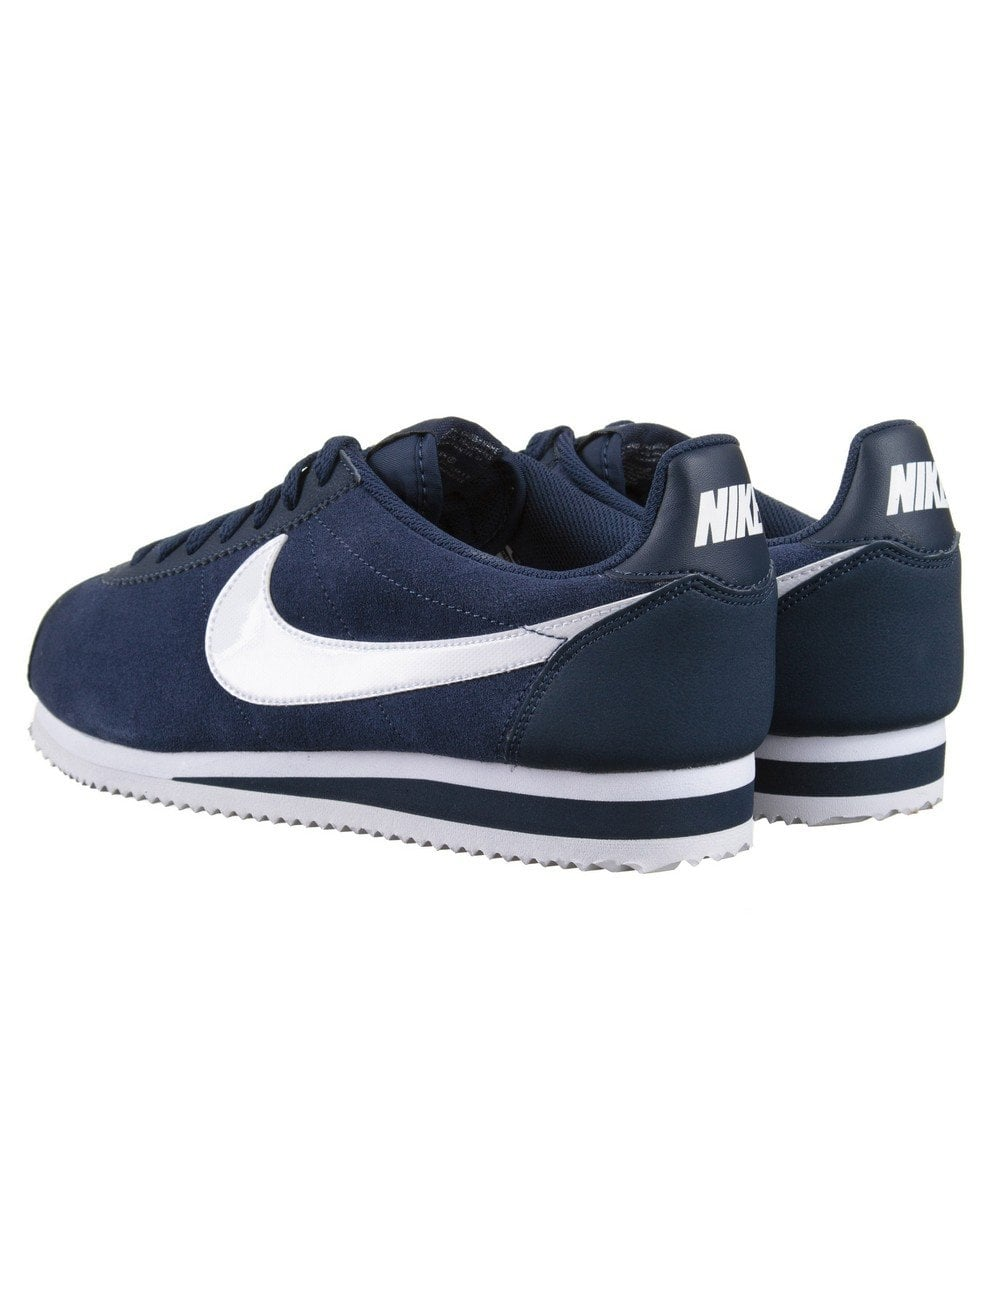 quality design eaf95 6797a Cortez Leather Shoes - Midnight Navy/White